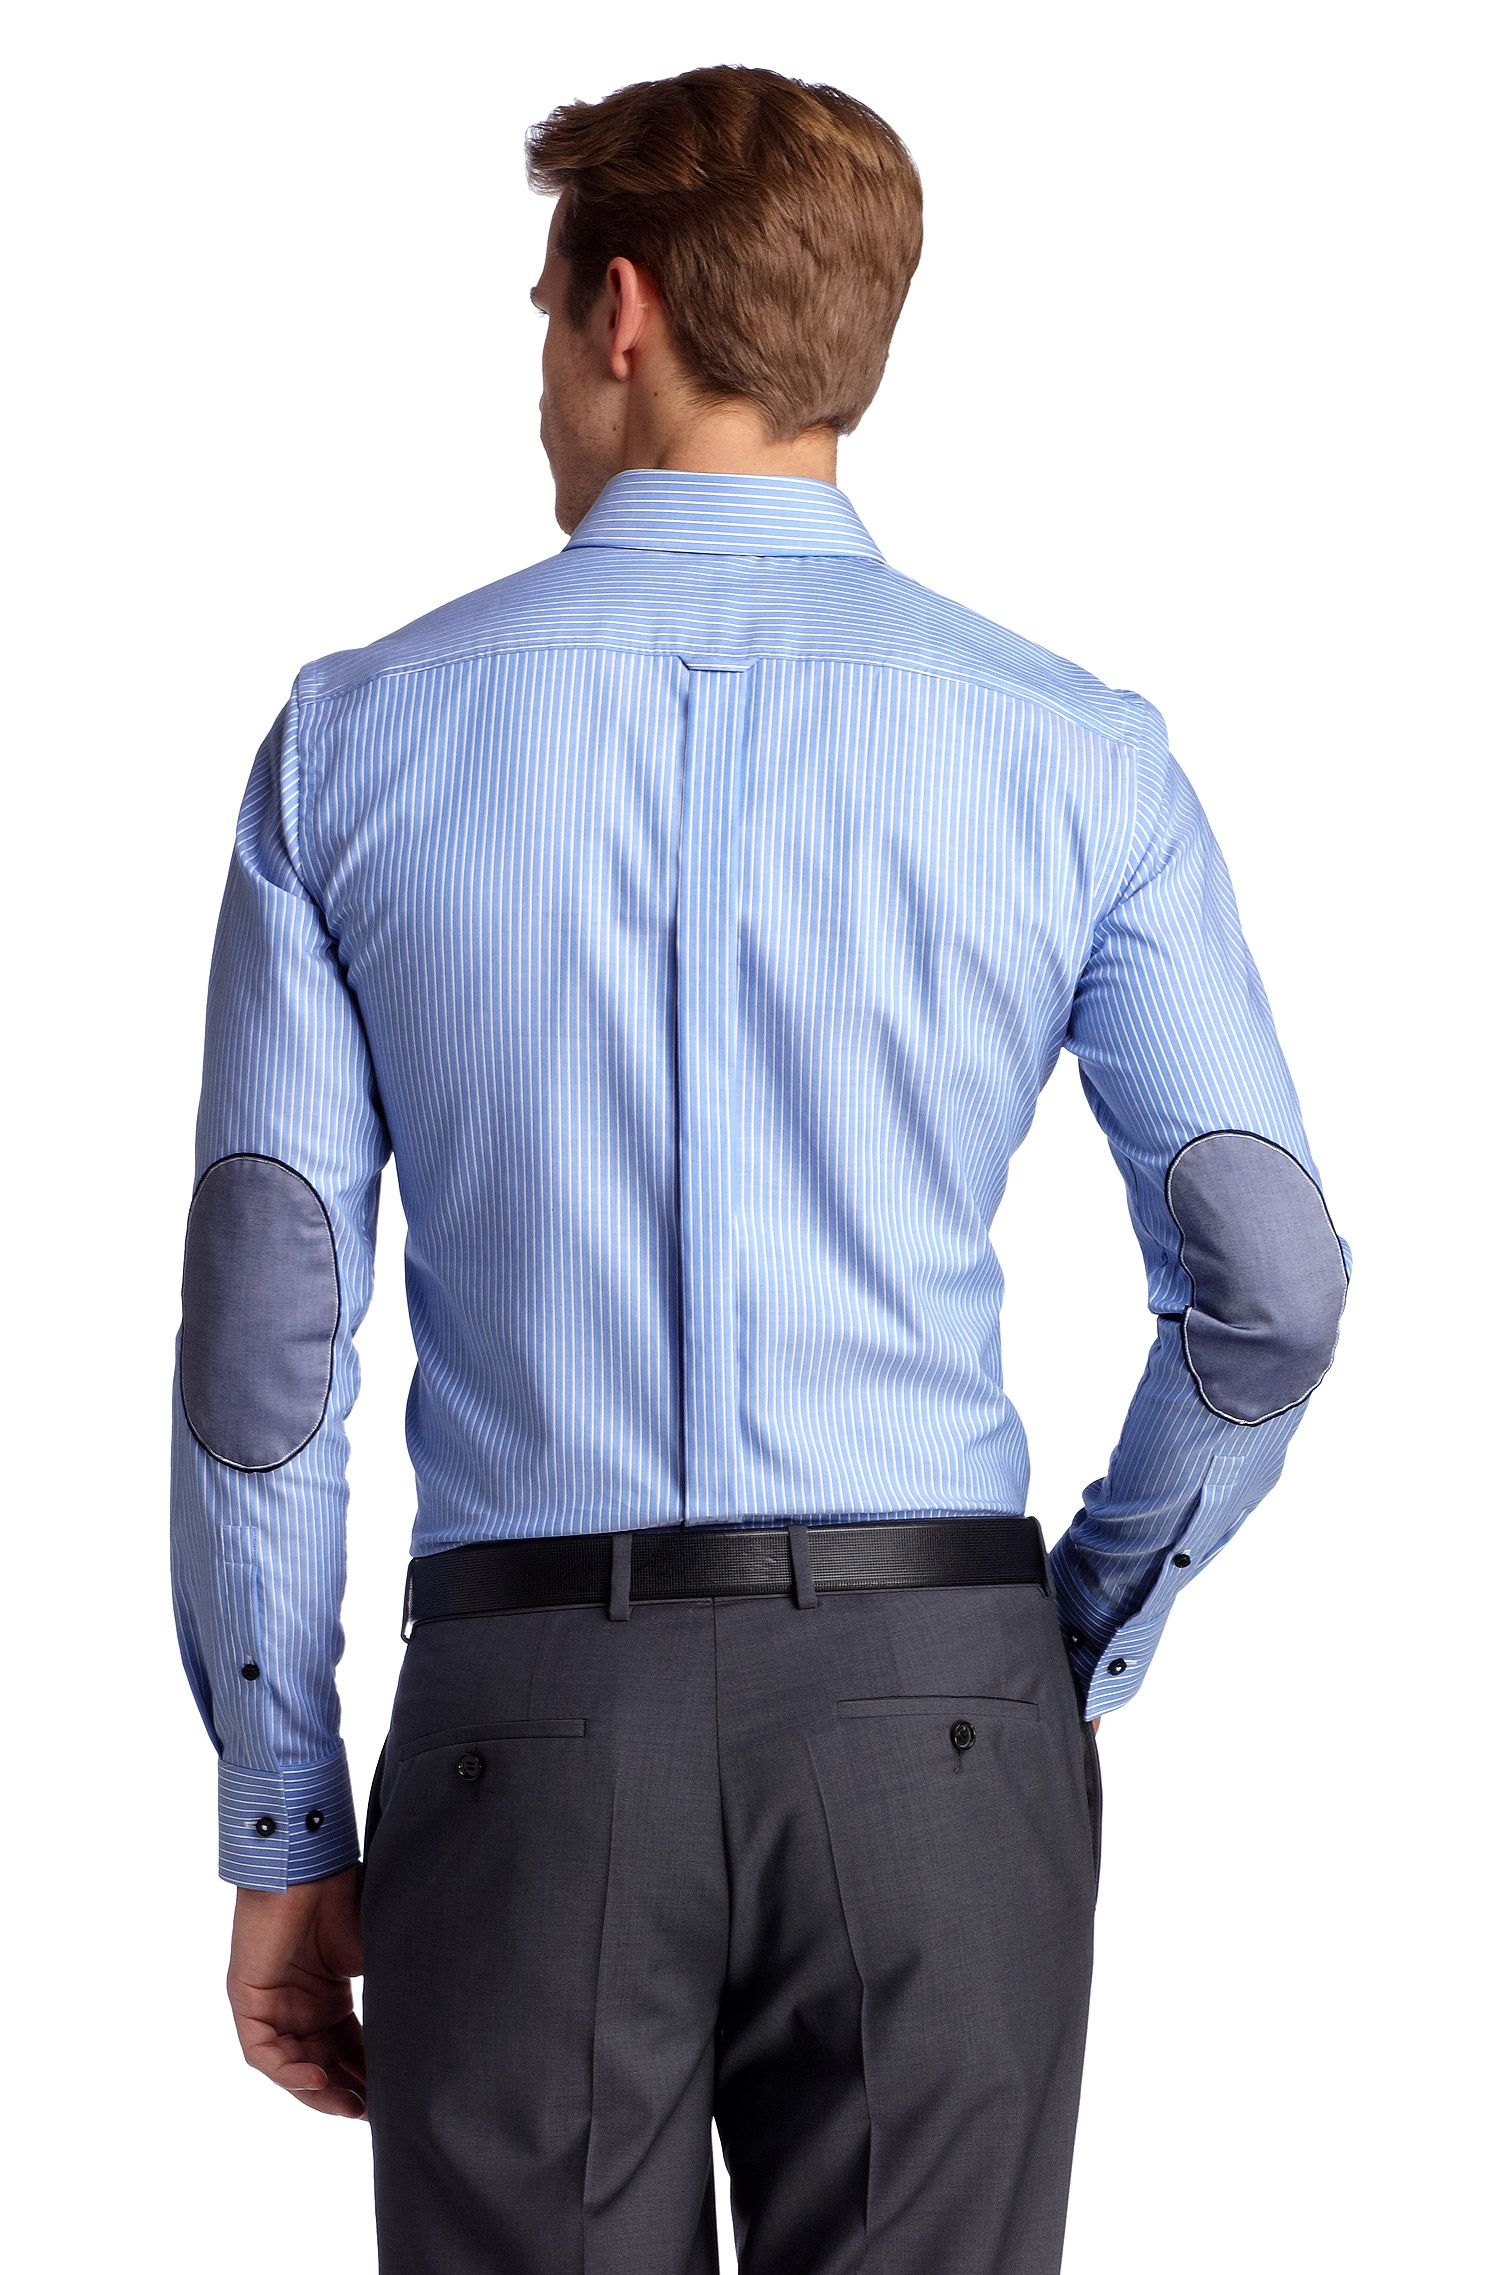 Chemise business à rayures, coupe Slim Fit, Jask